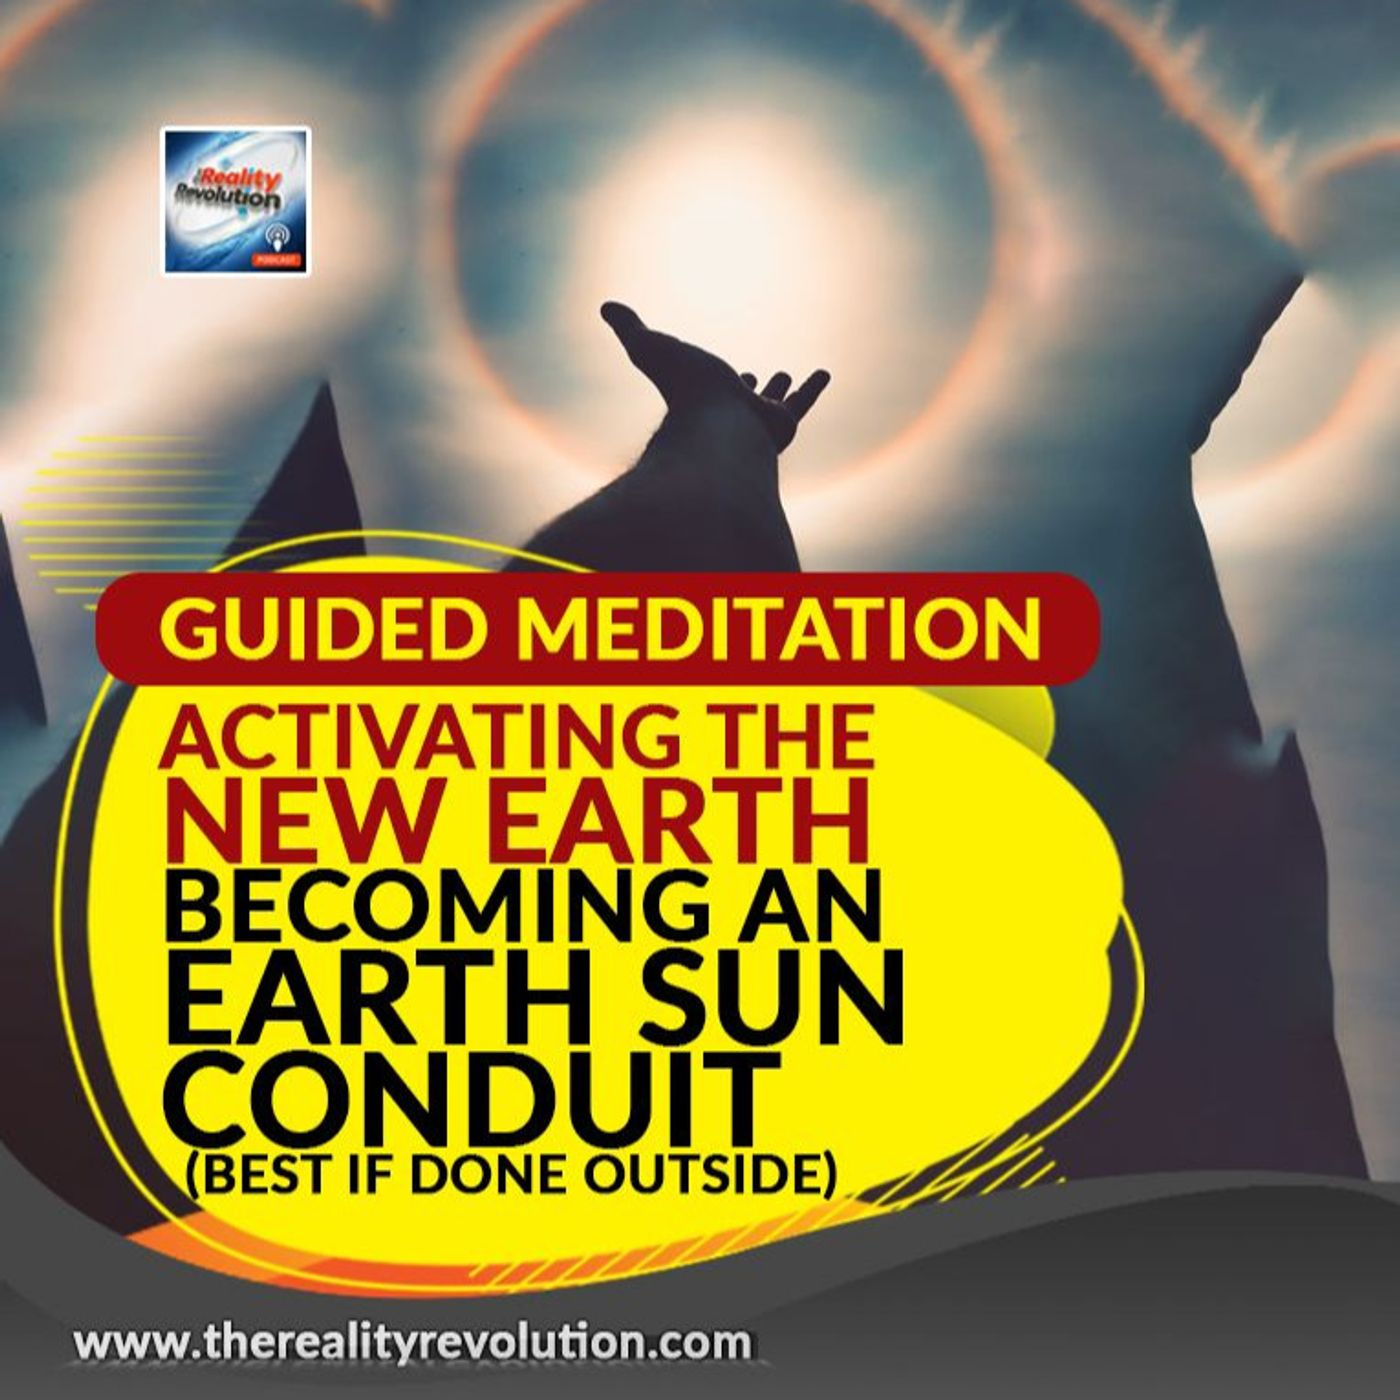 Guided Meditation  -  Activating The New Earth -  Becoming An Earth Sun Conduit